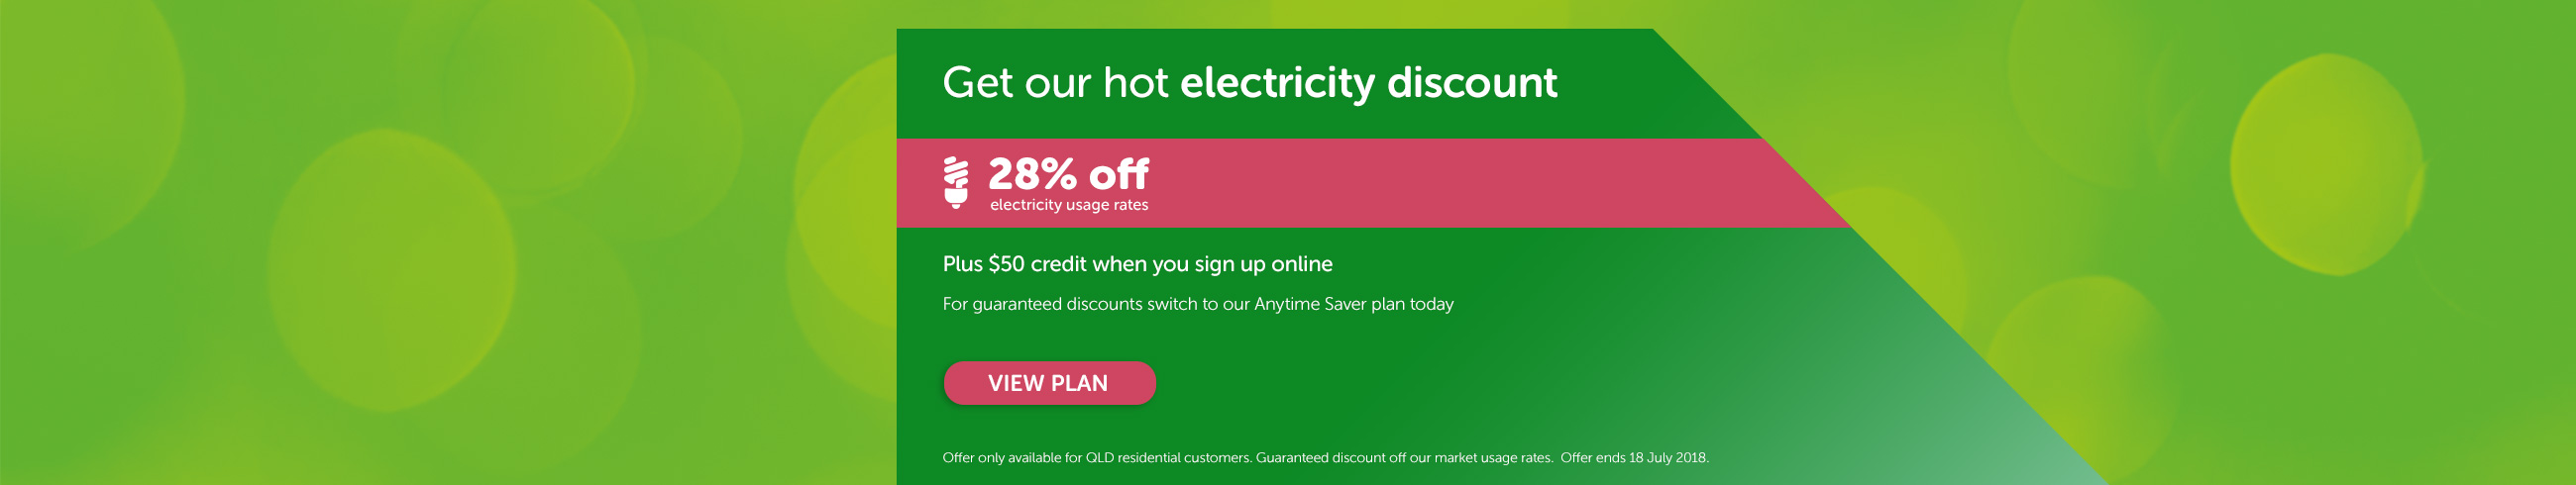 Get out hot electricity discount - Plus $50 credit when you sign up online